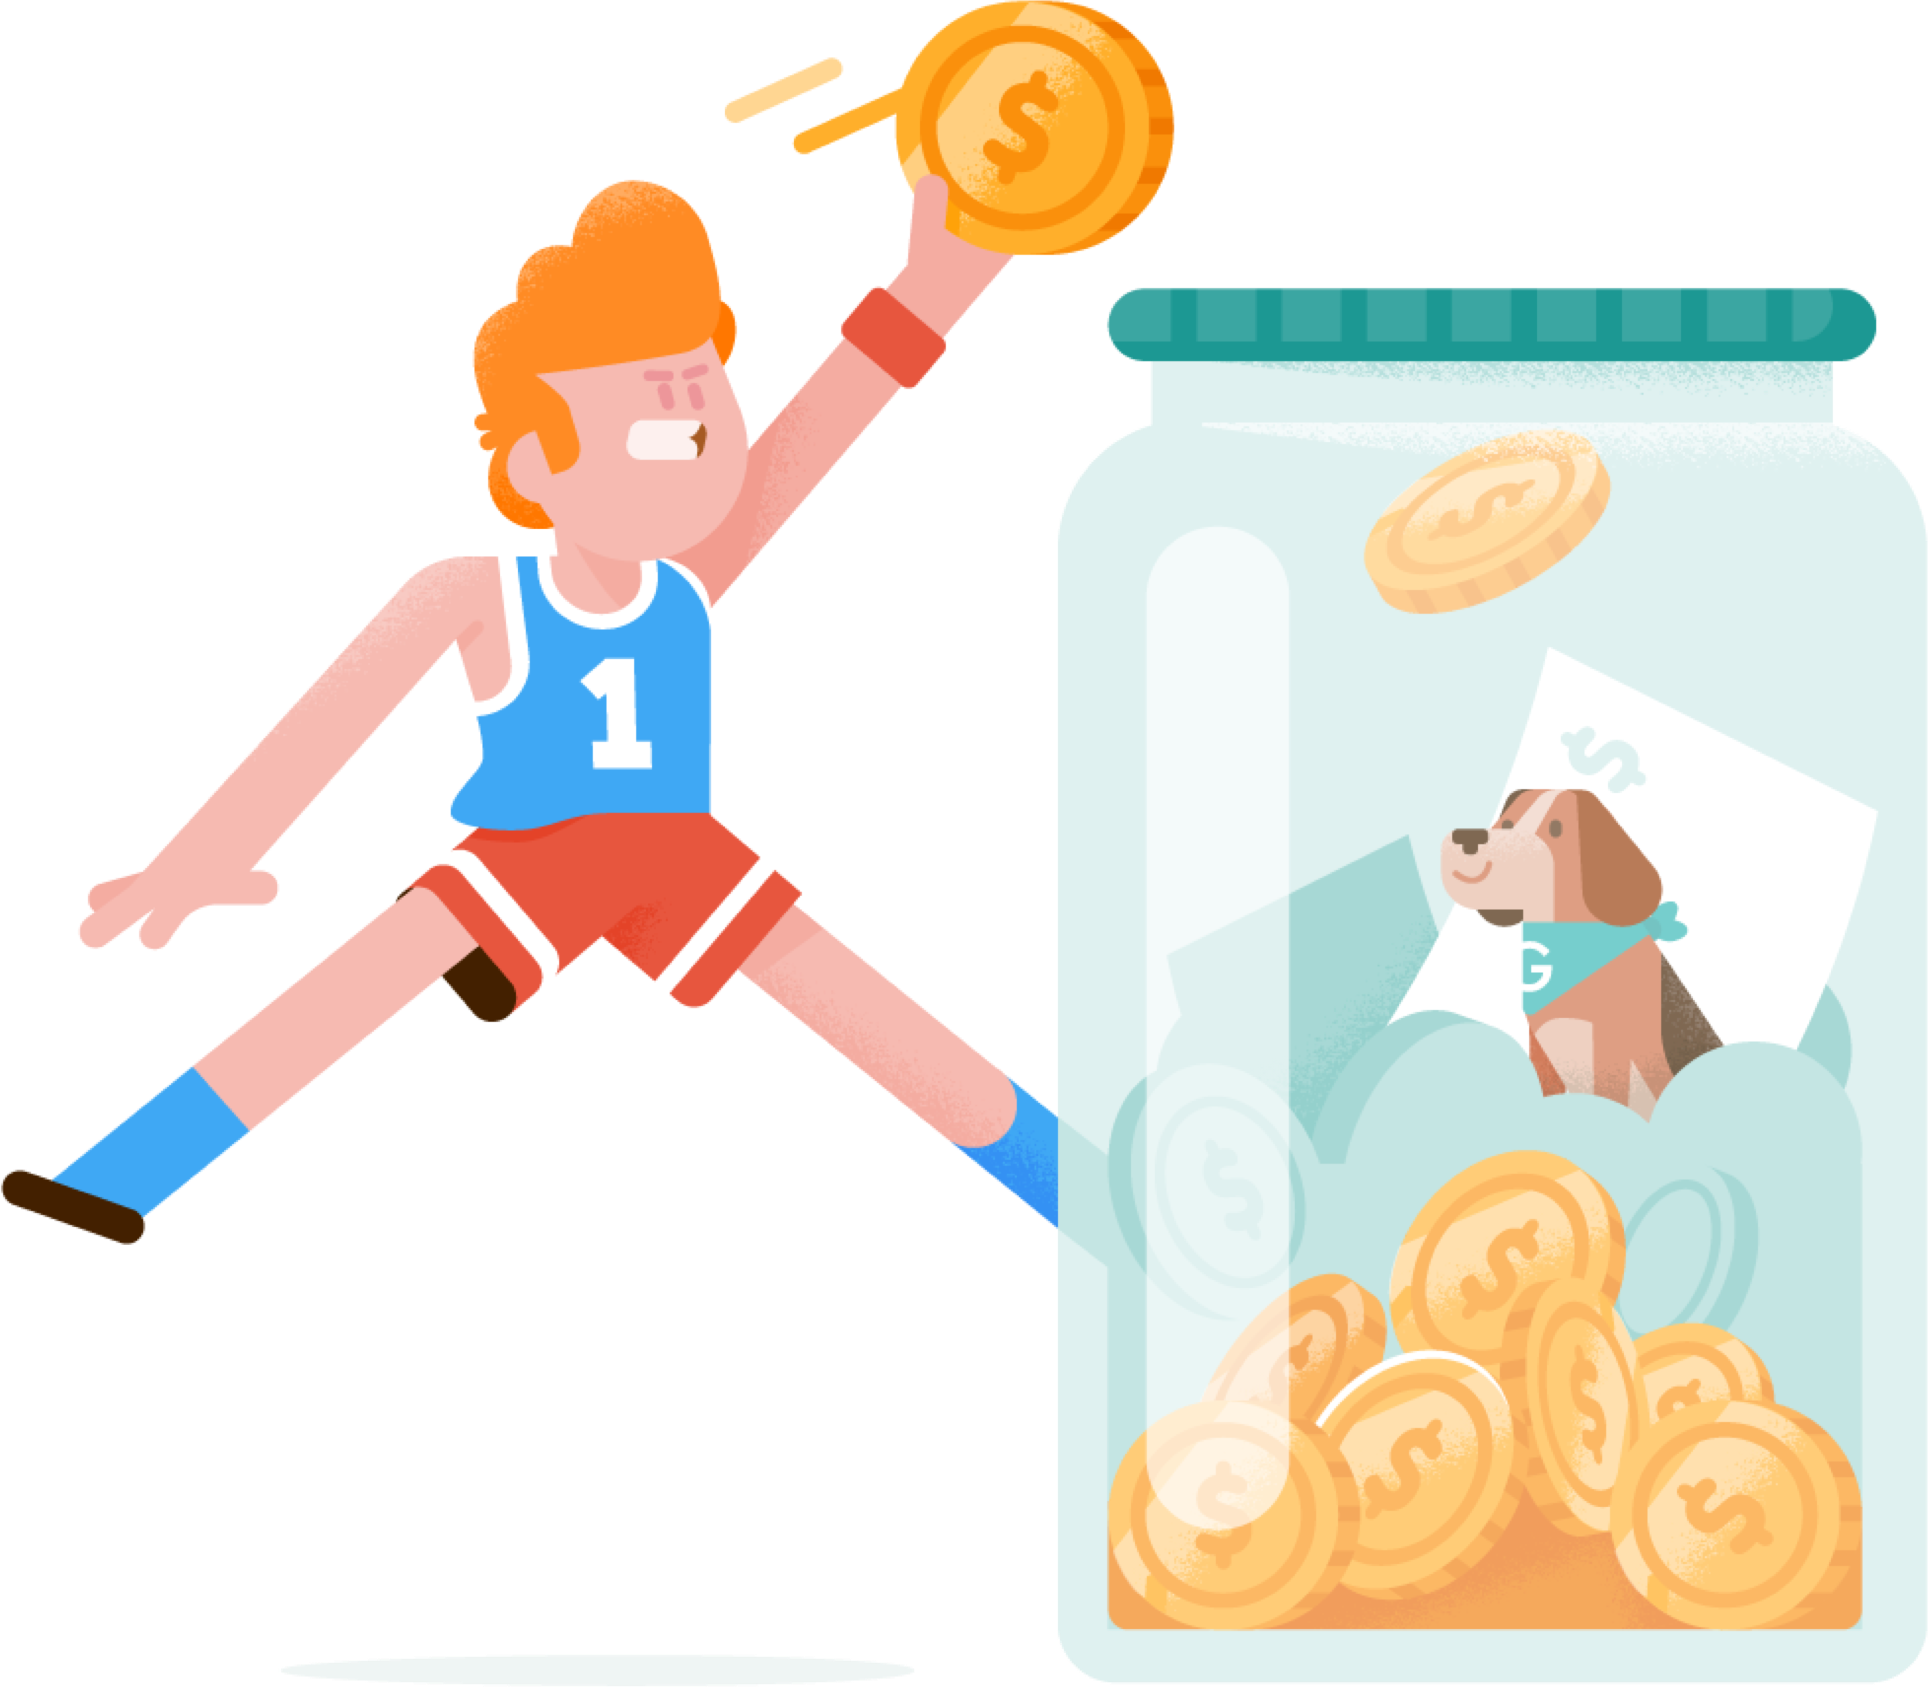 Design of determined basketball player to dunk a FlipGive coin into a savings jar with the FlipGive Dog, Max.